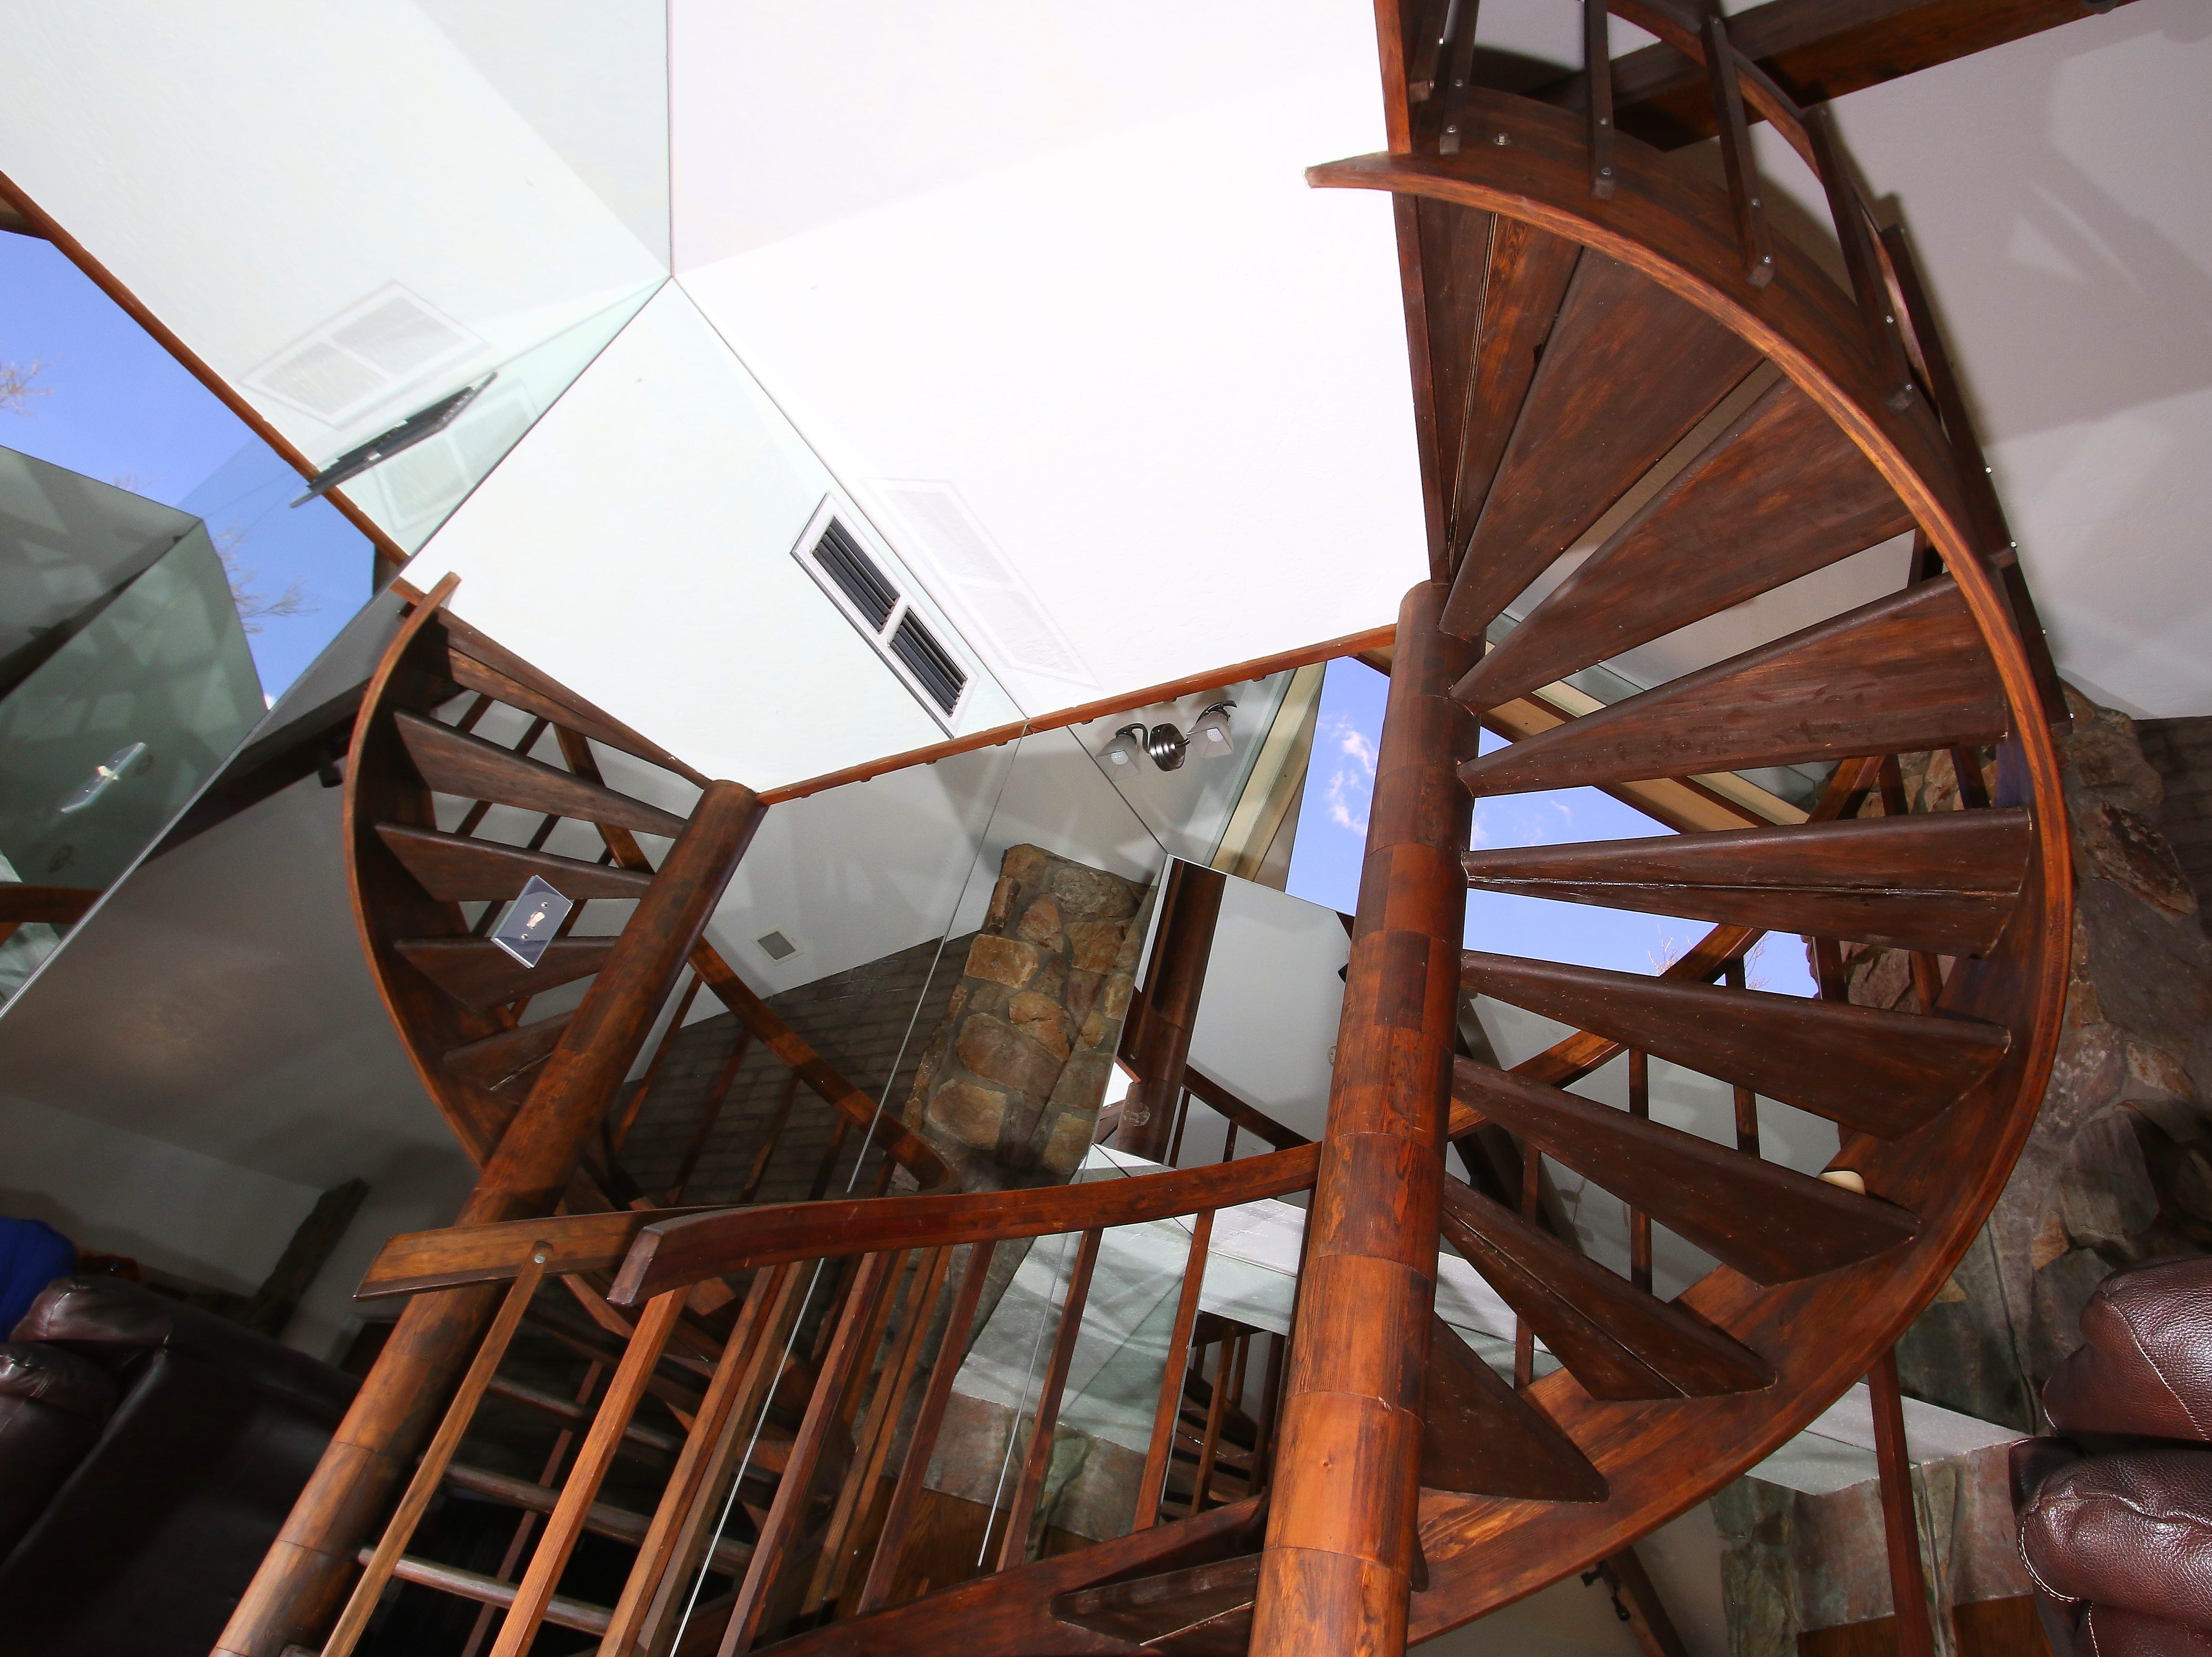 A view of the spiral staircase from below. The wood is purportedly from one single Hemlock tree in North Carolina.